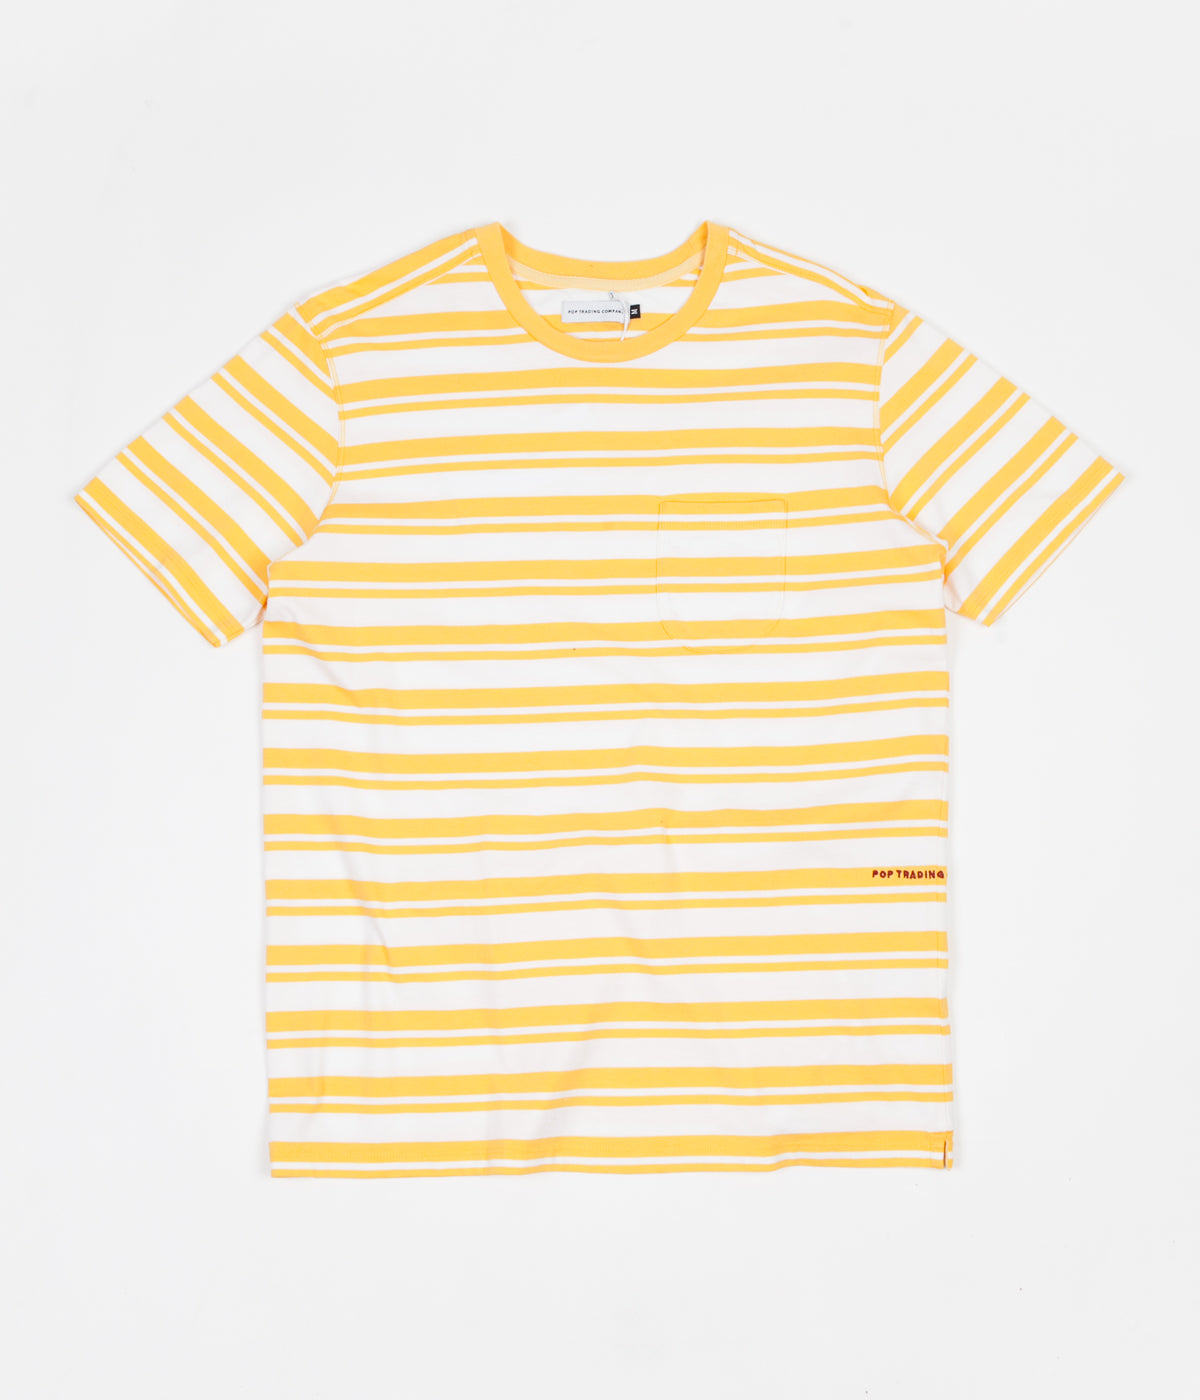 141193aeba3449 Pop Trading Company Striped Pocket T-Shirt - Yellow   White